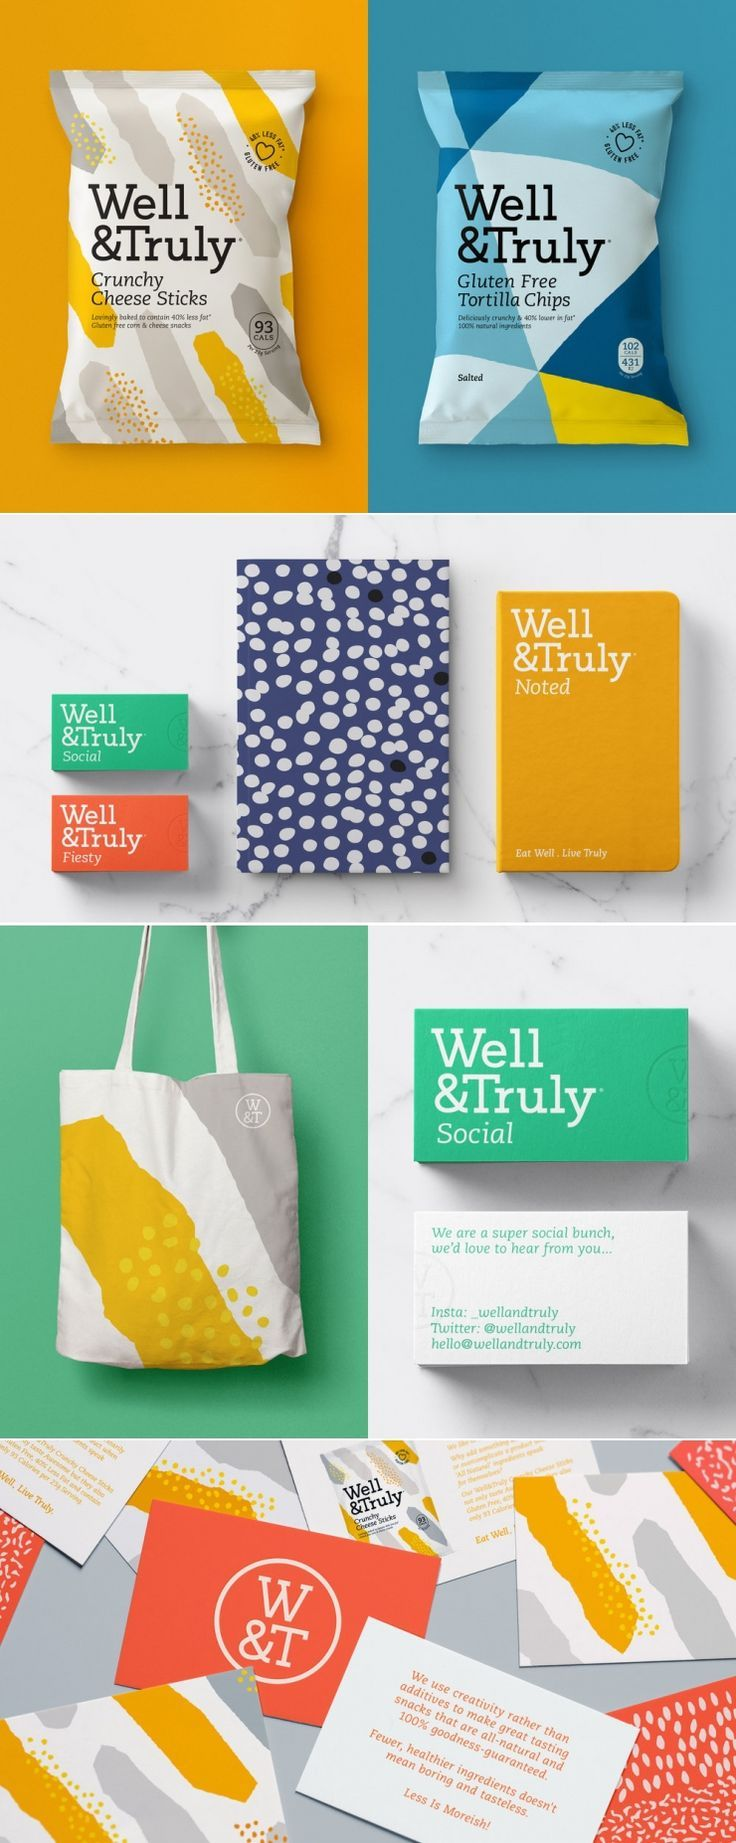 Well & Truly is Here To Change Up The Healthy Snack Market With Colorful Packaging